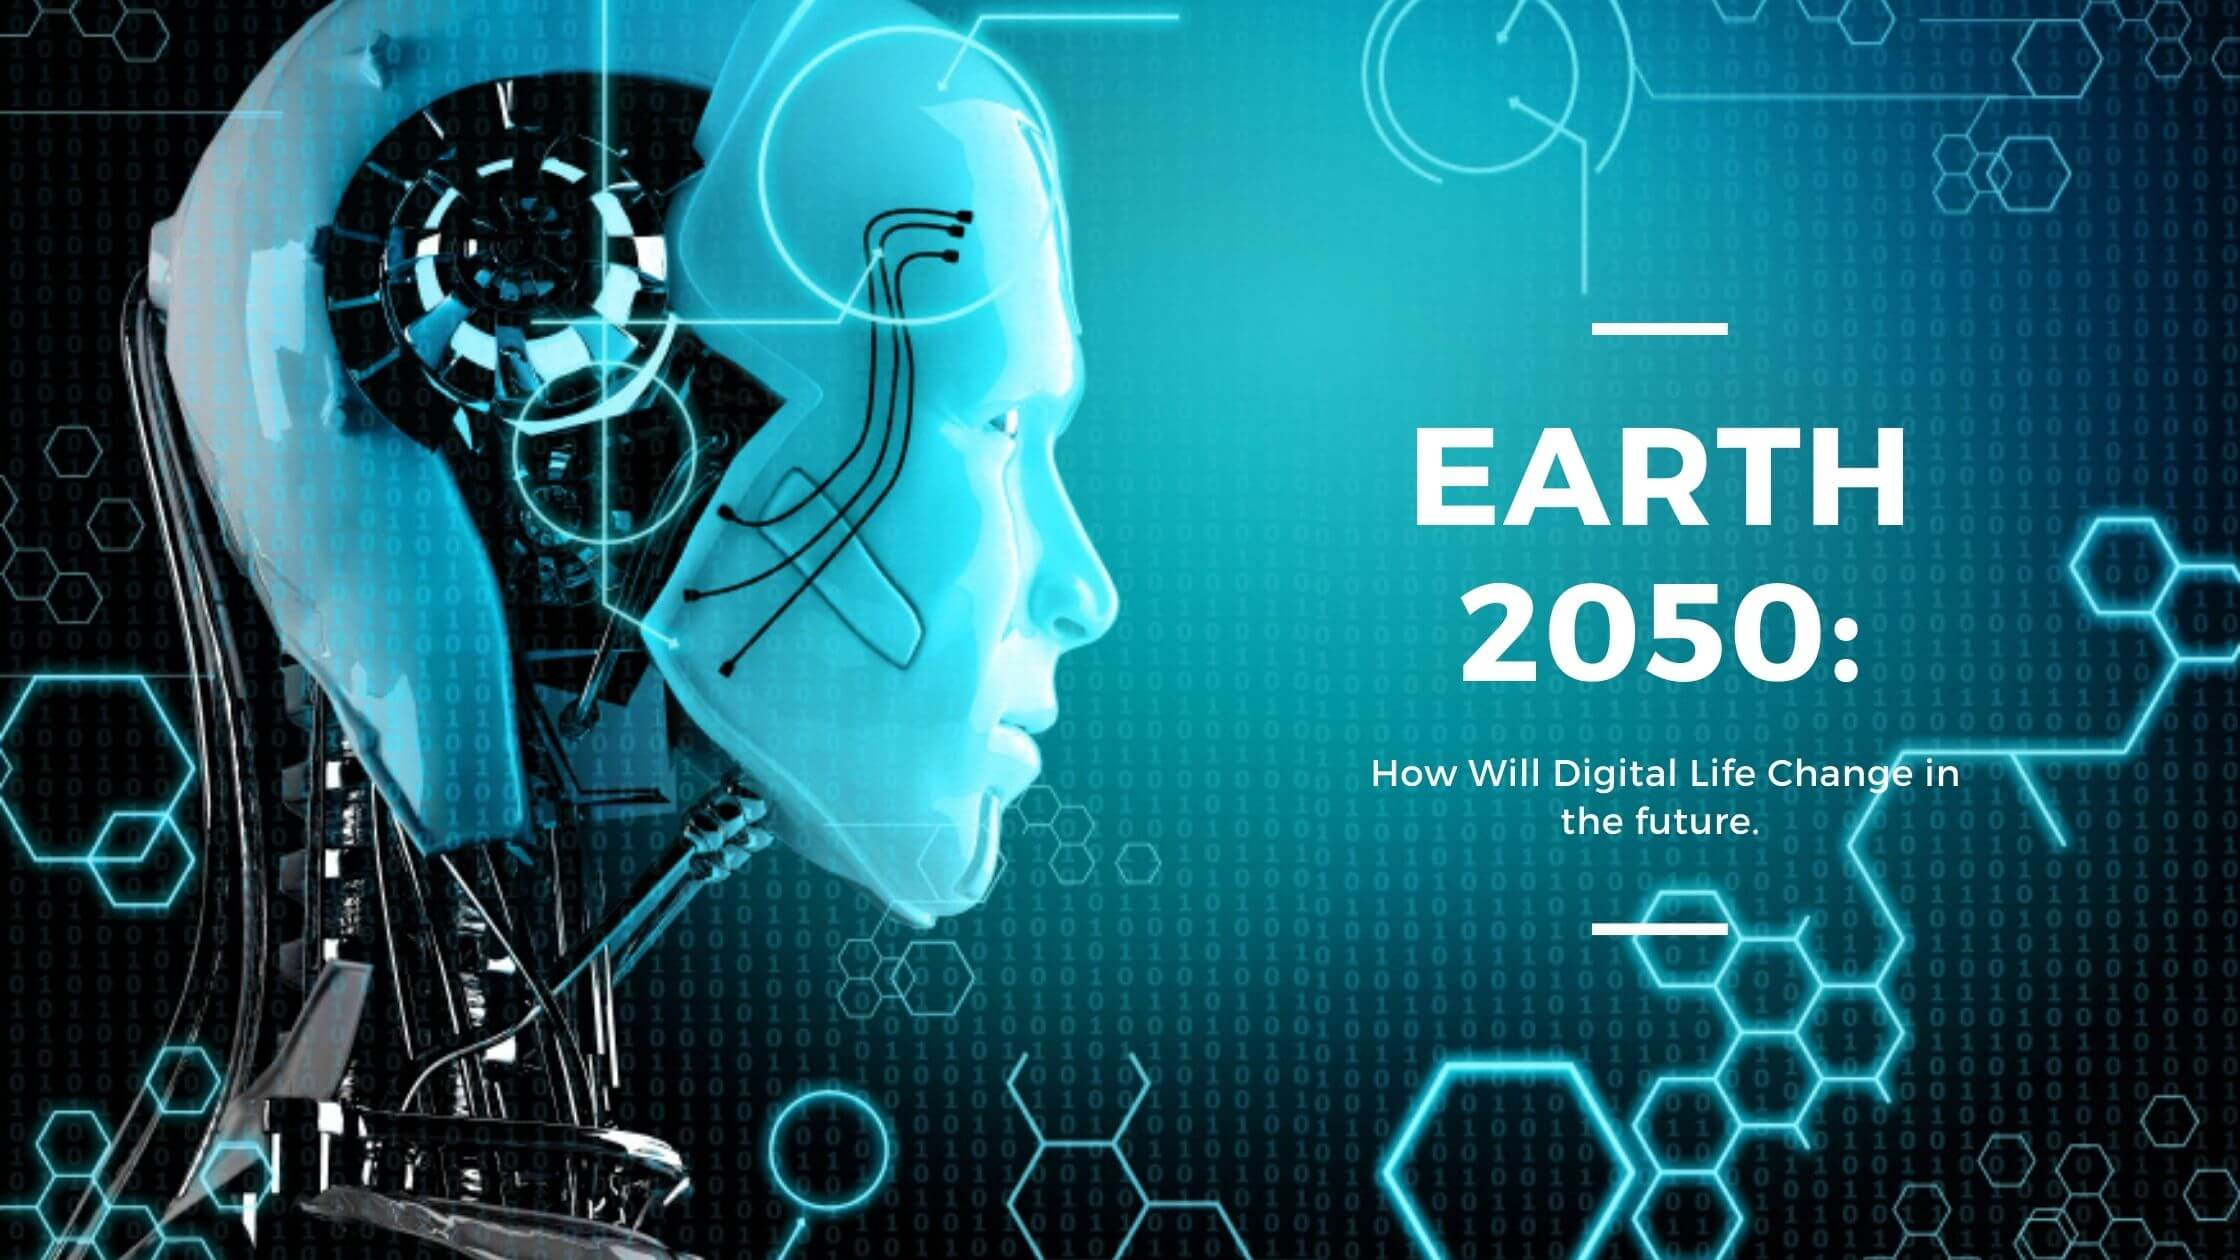 Earth 2050 How Will Digital Life Change in the future.